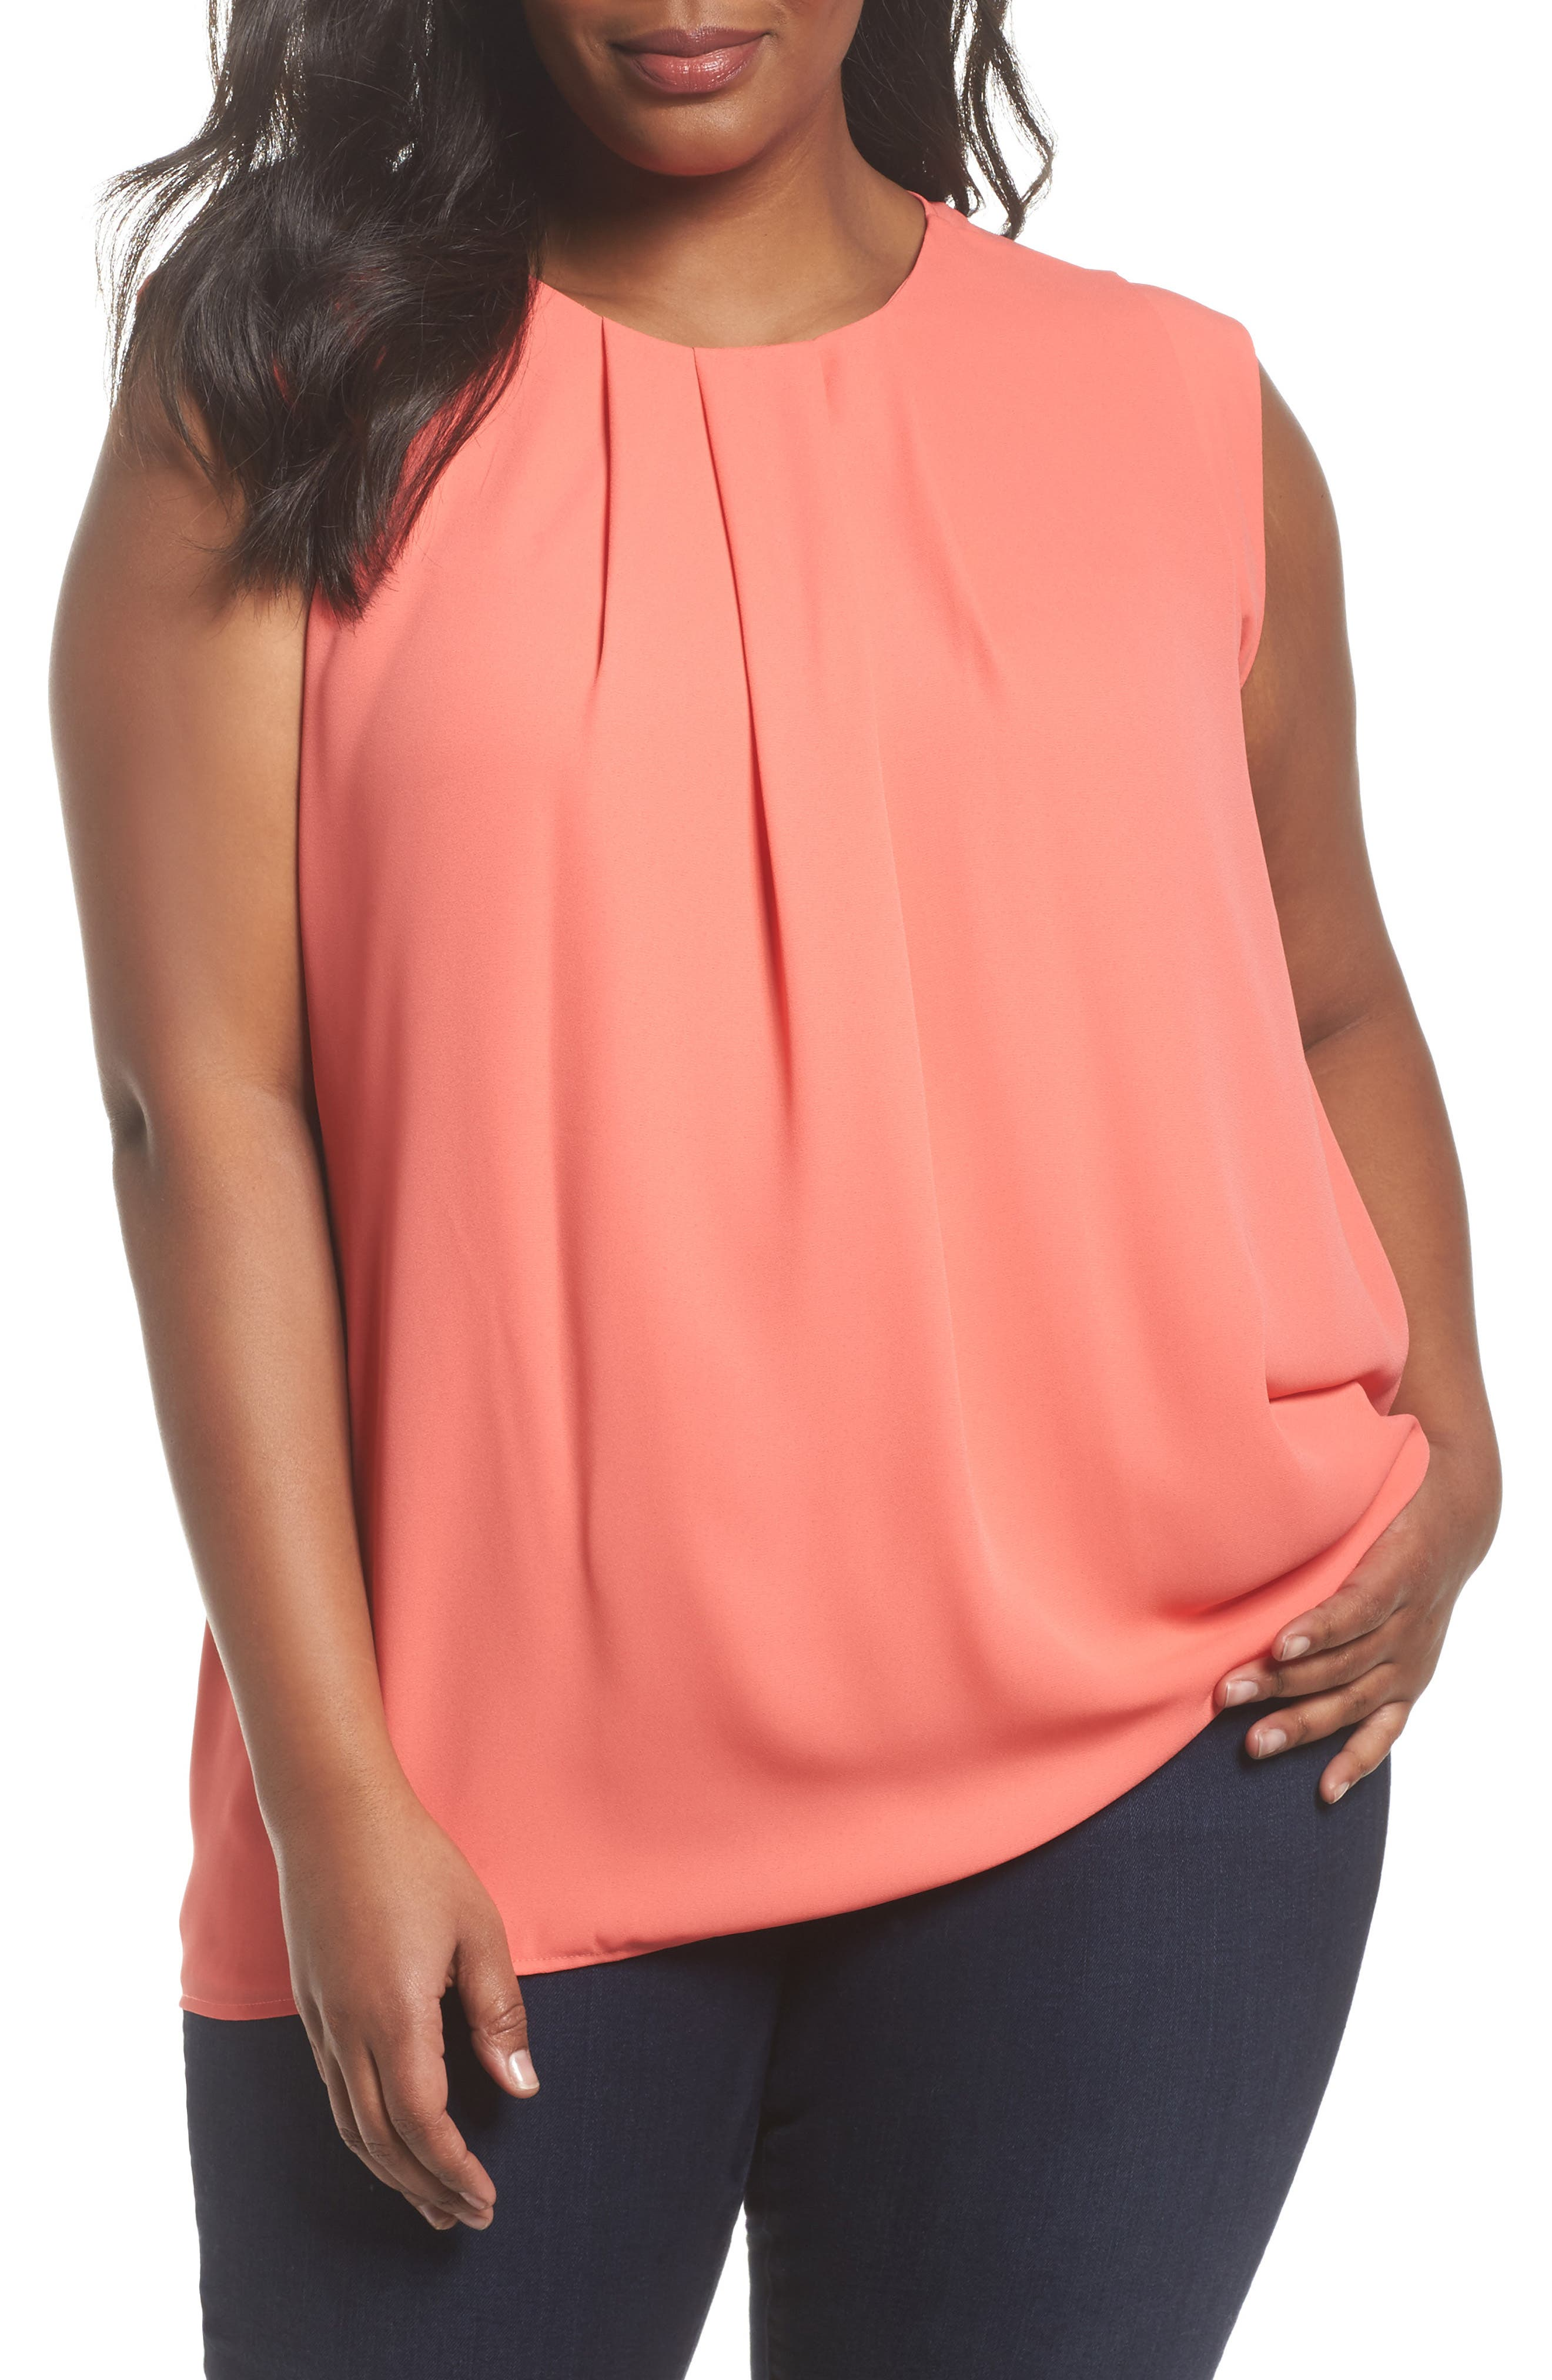 Main Image - Vince Camuto Pleated Blouse (Plus Size)